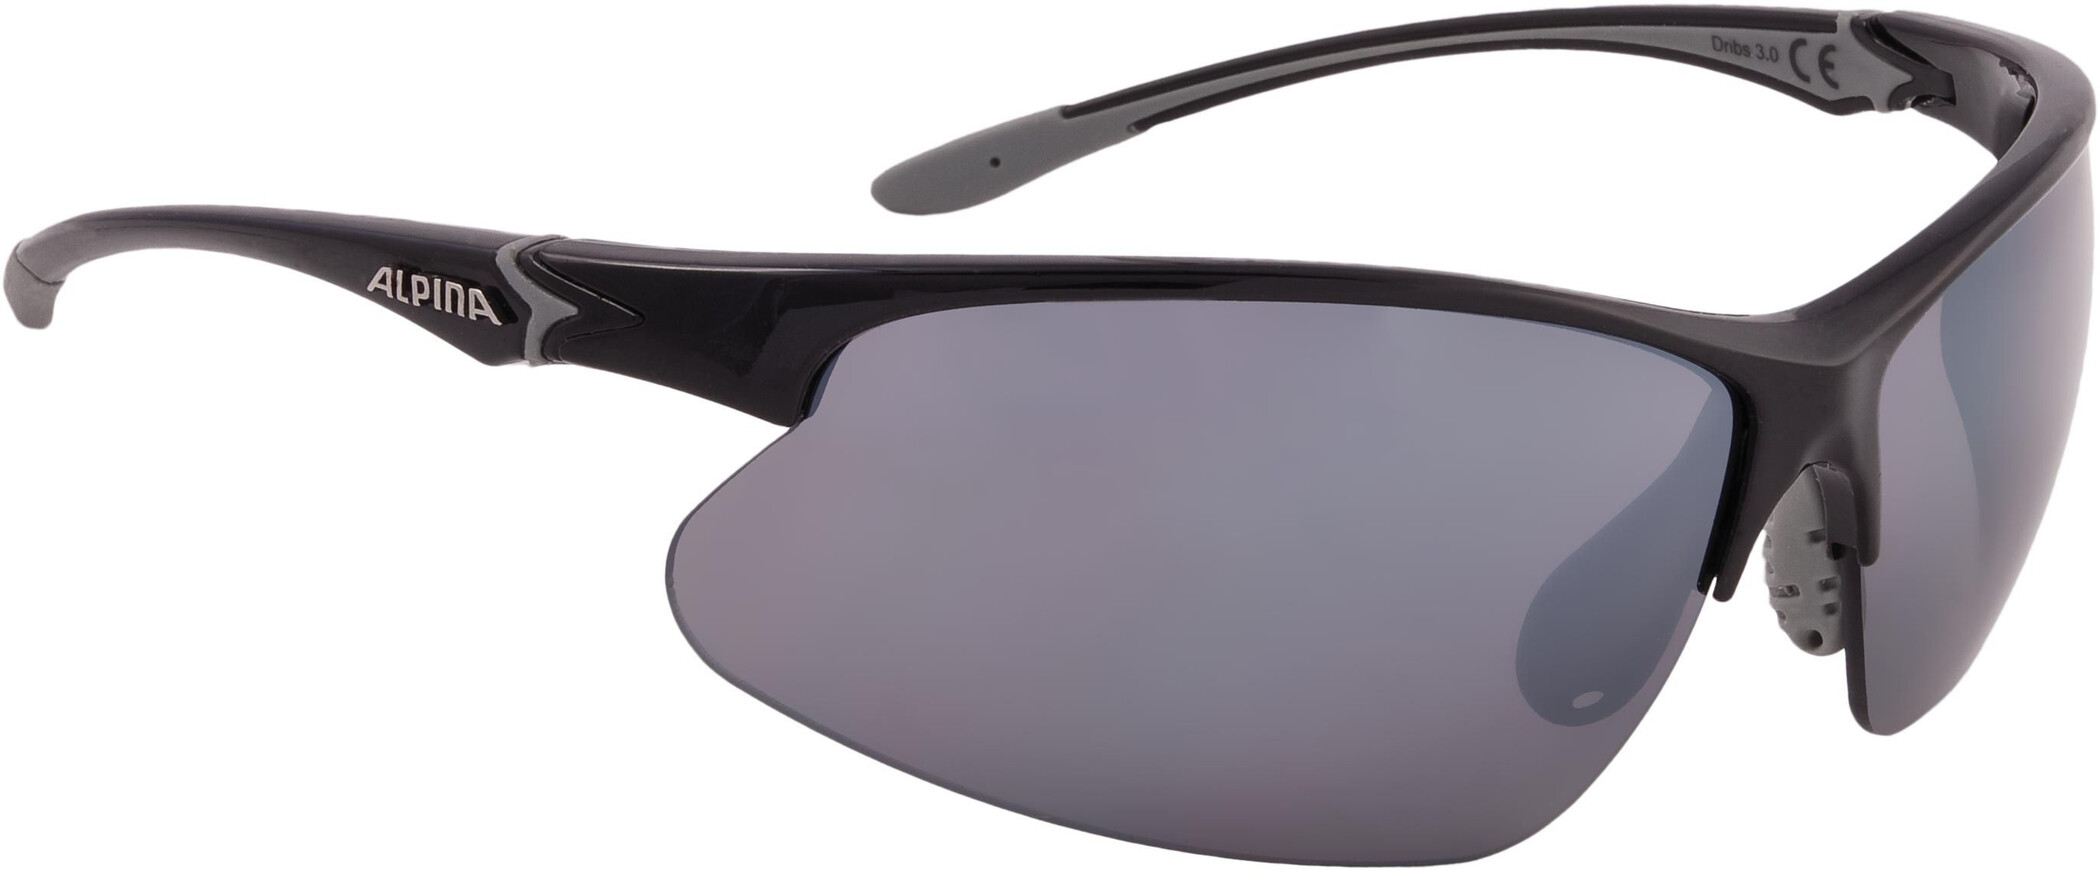 Alpina Dribs 3.0 Cykelbriller, black-grey (2019) | Glasses